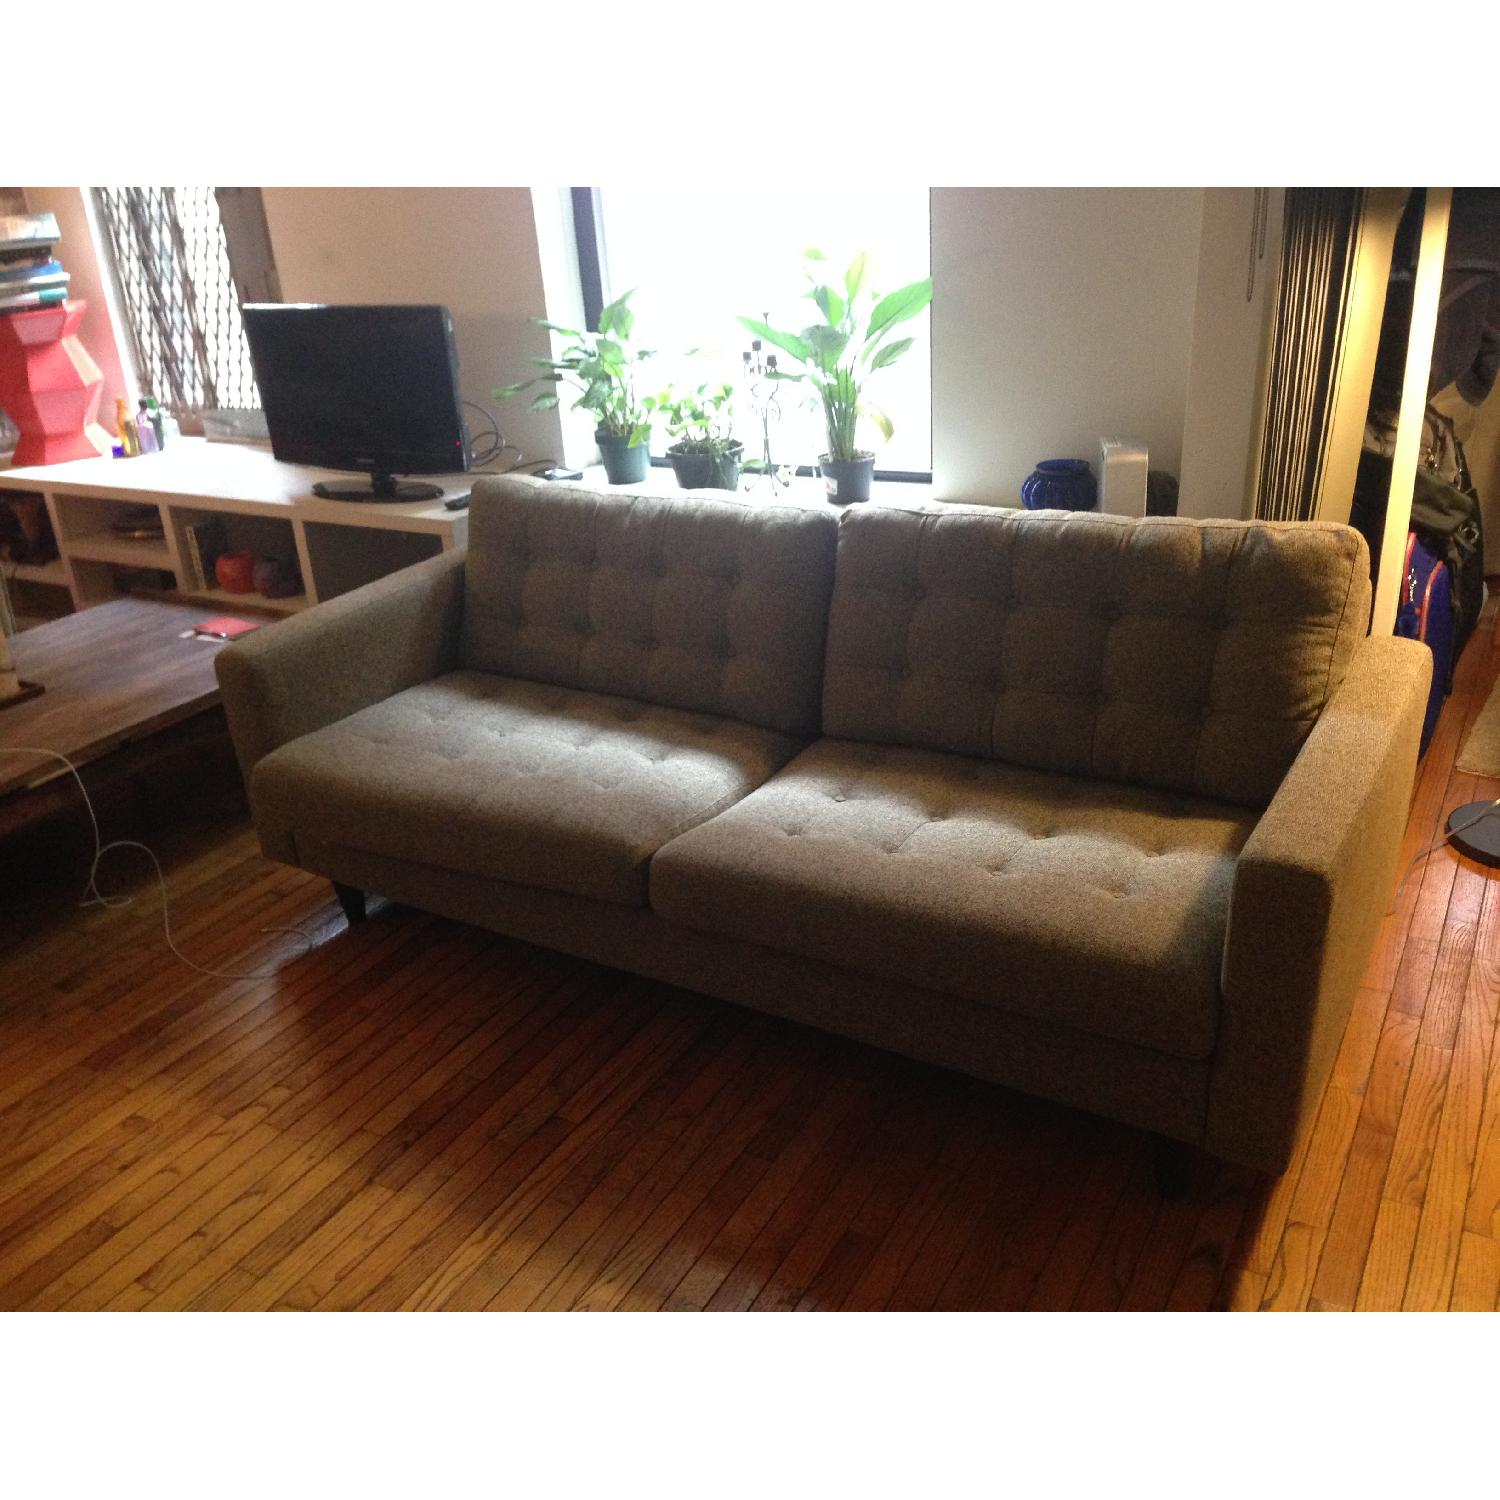 Modway Sofa in Oatmeal - image-2